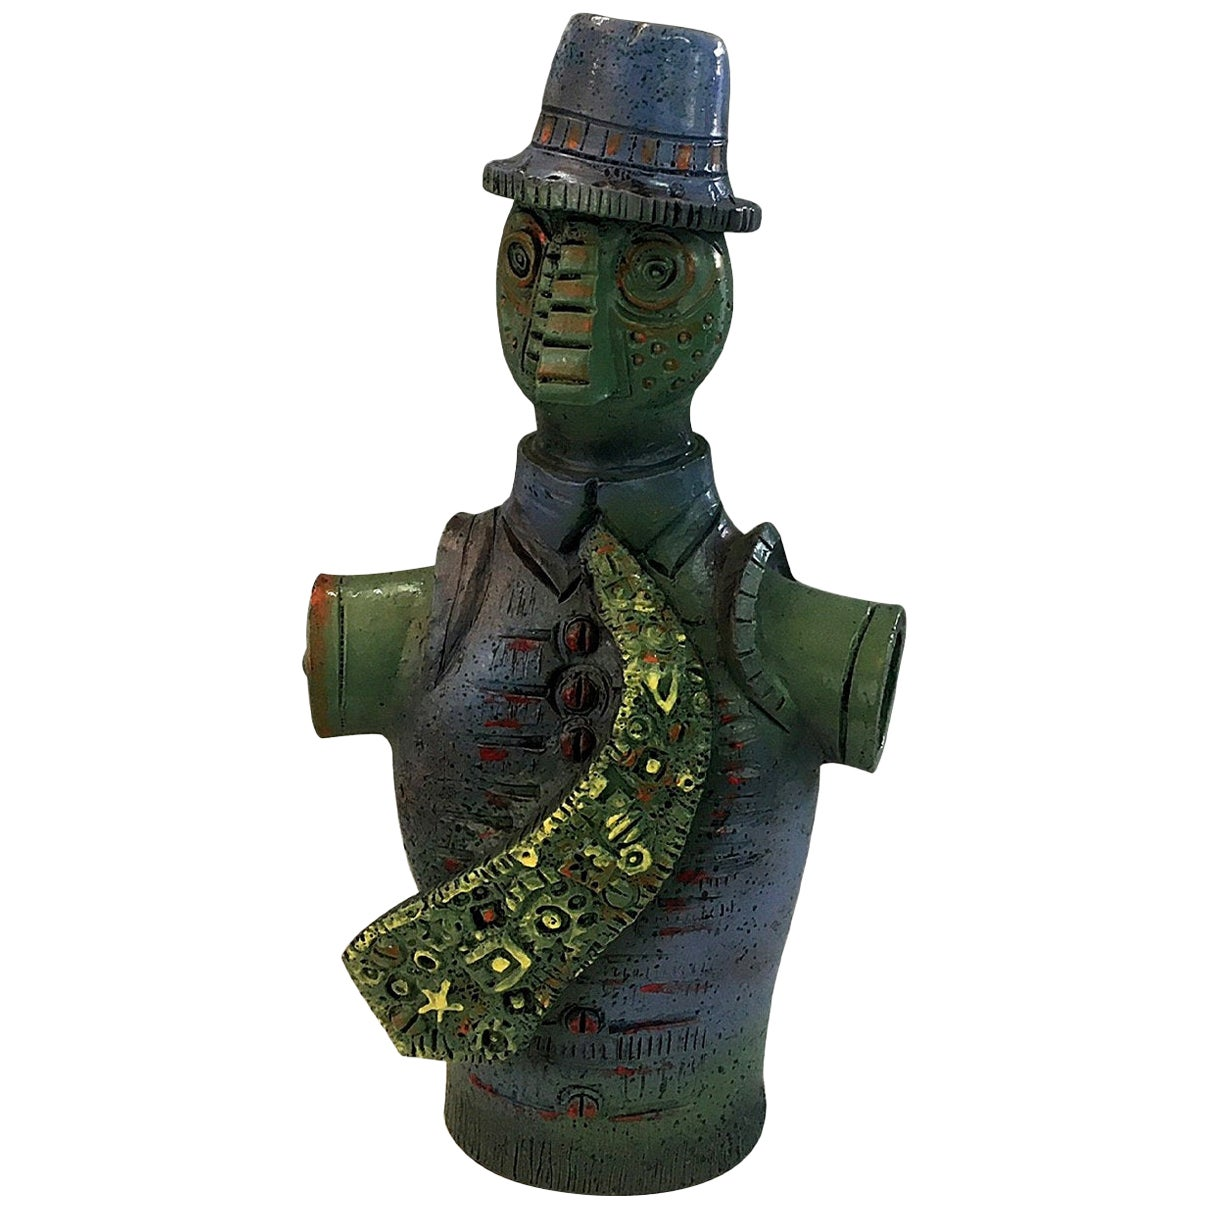 Sculpture with a Tie 2019